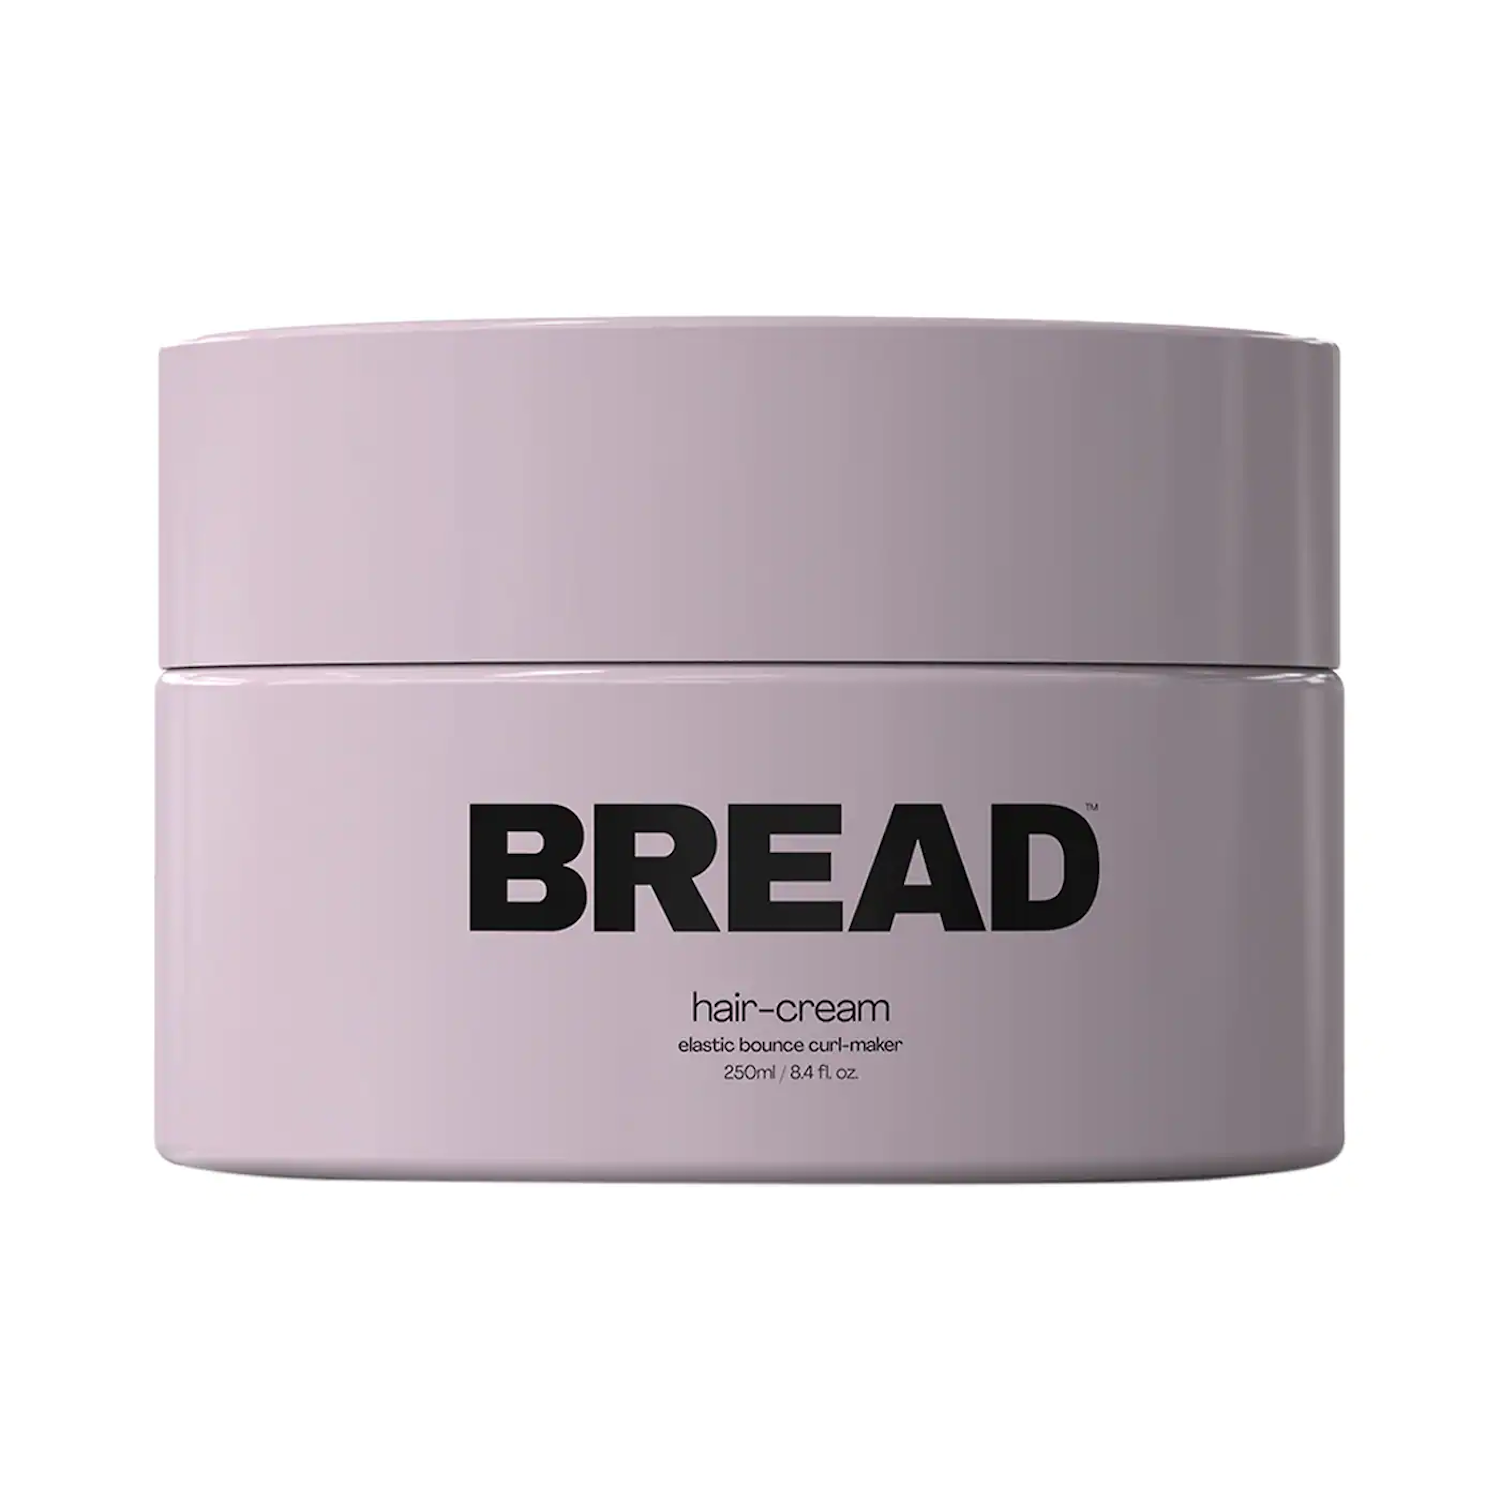 BREAD BEAUTY SUPPLY Elastic Bounce Leave-in Conditioning Styler Hair Cream